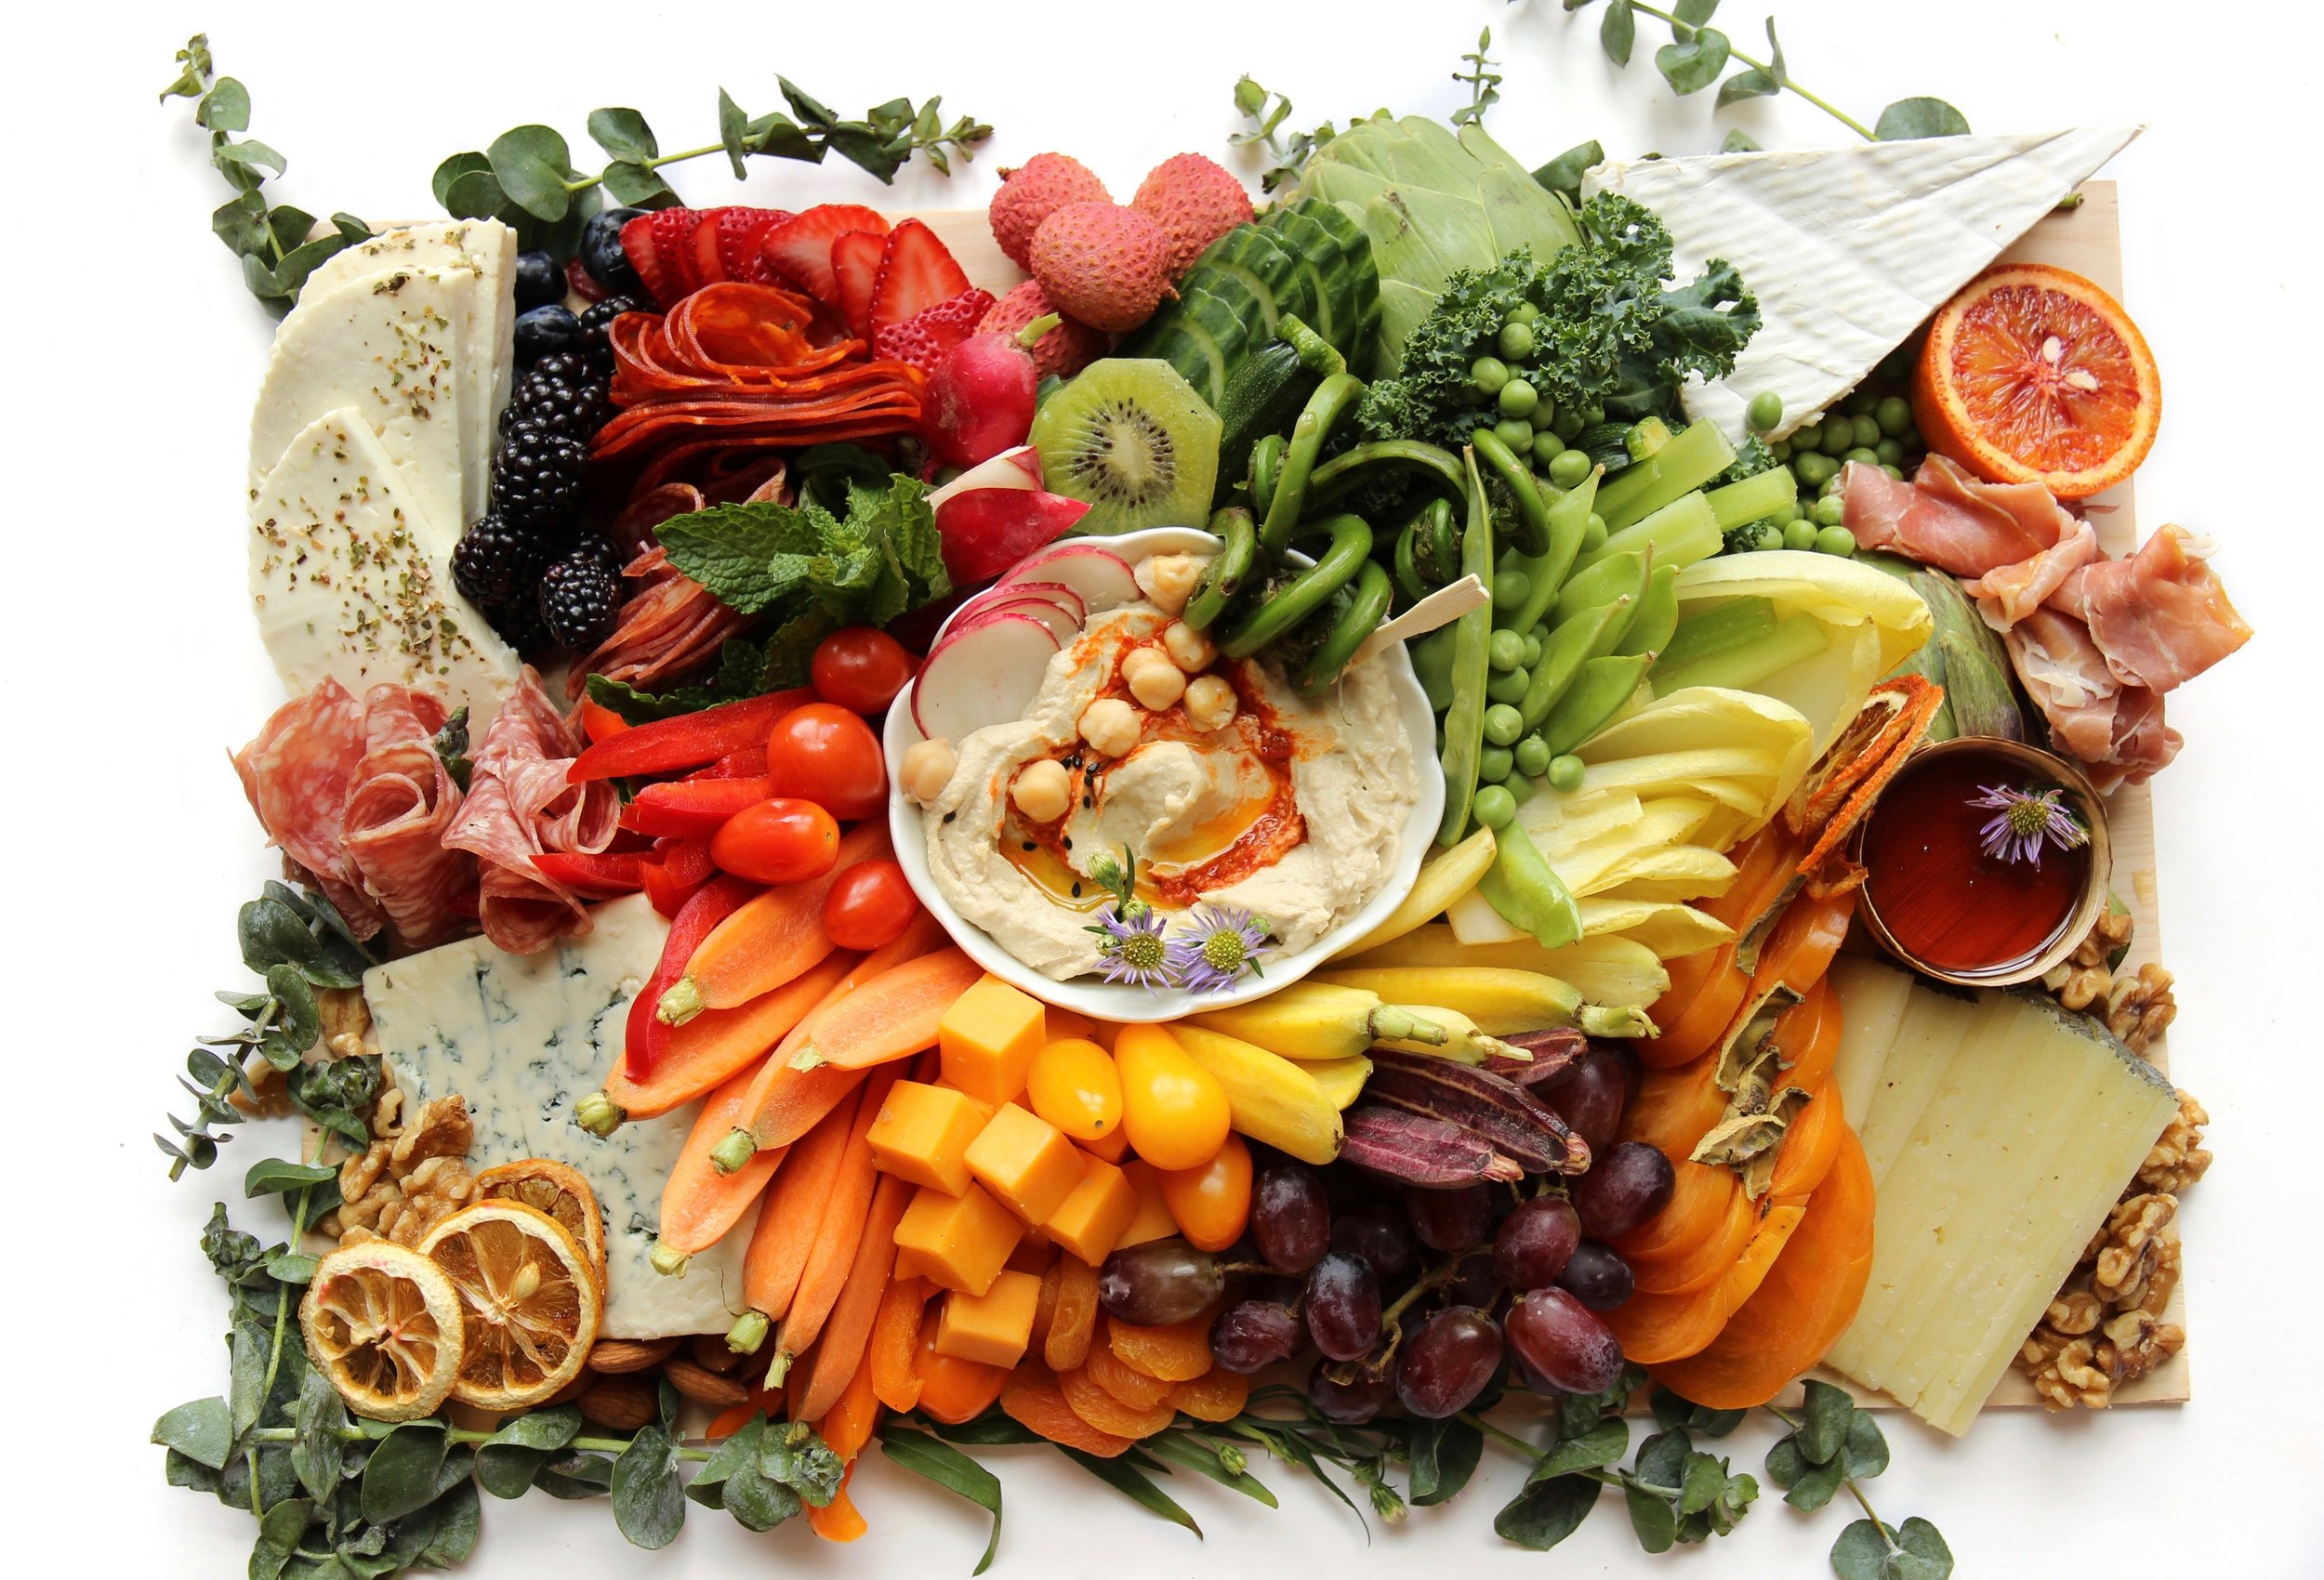 edible art - We are so excited to announce that we are now offering Grazing Boards in NYC. One of our favorite activities in the city is to visit the Farmers' Market, alive with tons of colors, scents, and tastes. It makes this concrete jungle feel a bit more beautiful and us a bit more connected with the Earth. We have loved creating boutique boards from our Farmers' Market visits for our friends and family for years and we're so excited to now offer them to our NYC community. Just the sight of these boards makes you slow down, engage in conversation and bring a sense of togetherness, all while nourishing our bodies.